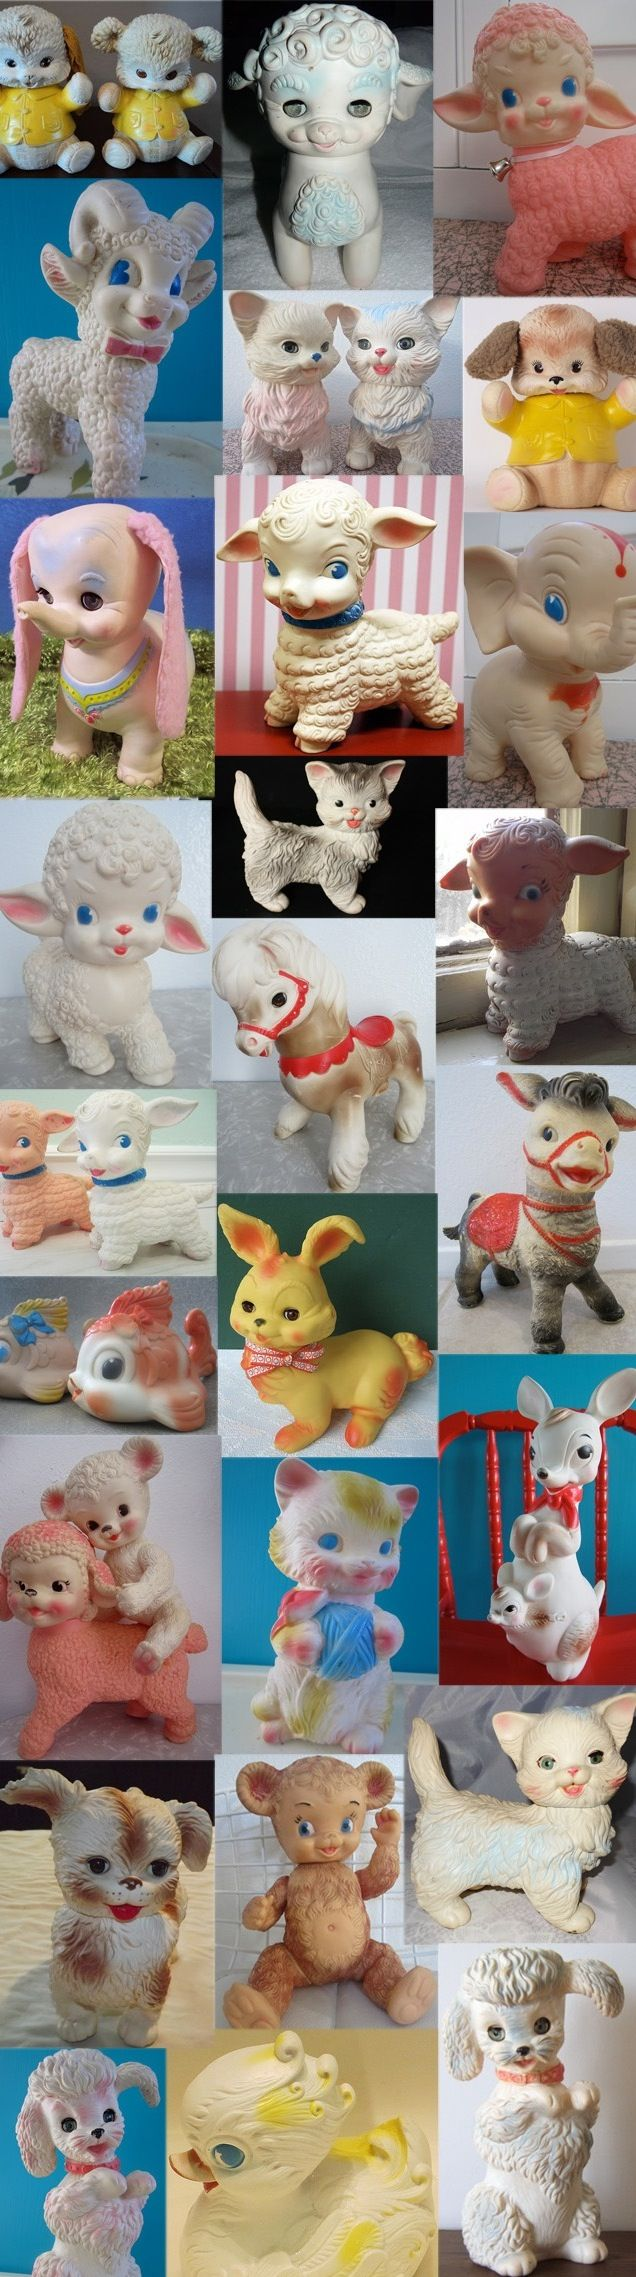 Claasic vintage toys vintage toys second shout out http www - Vintage Squeak Toys